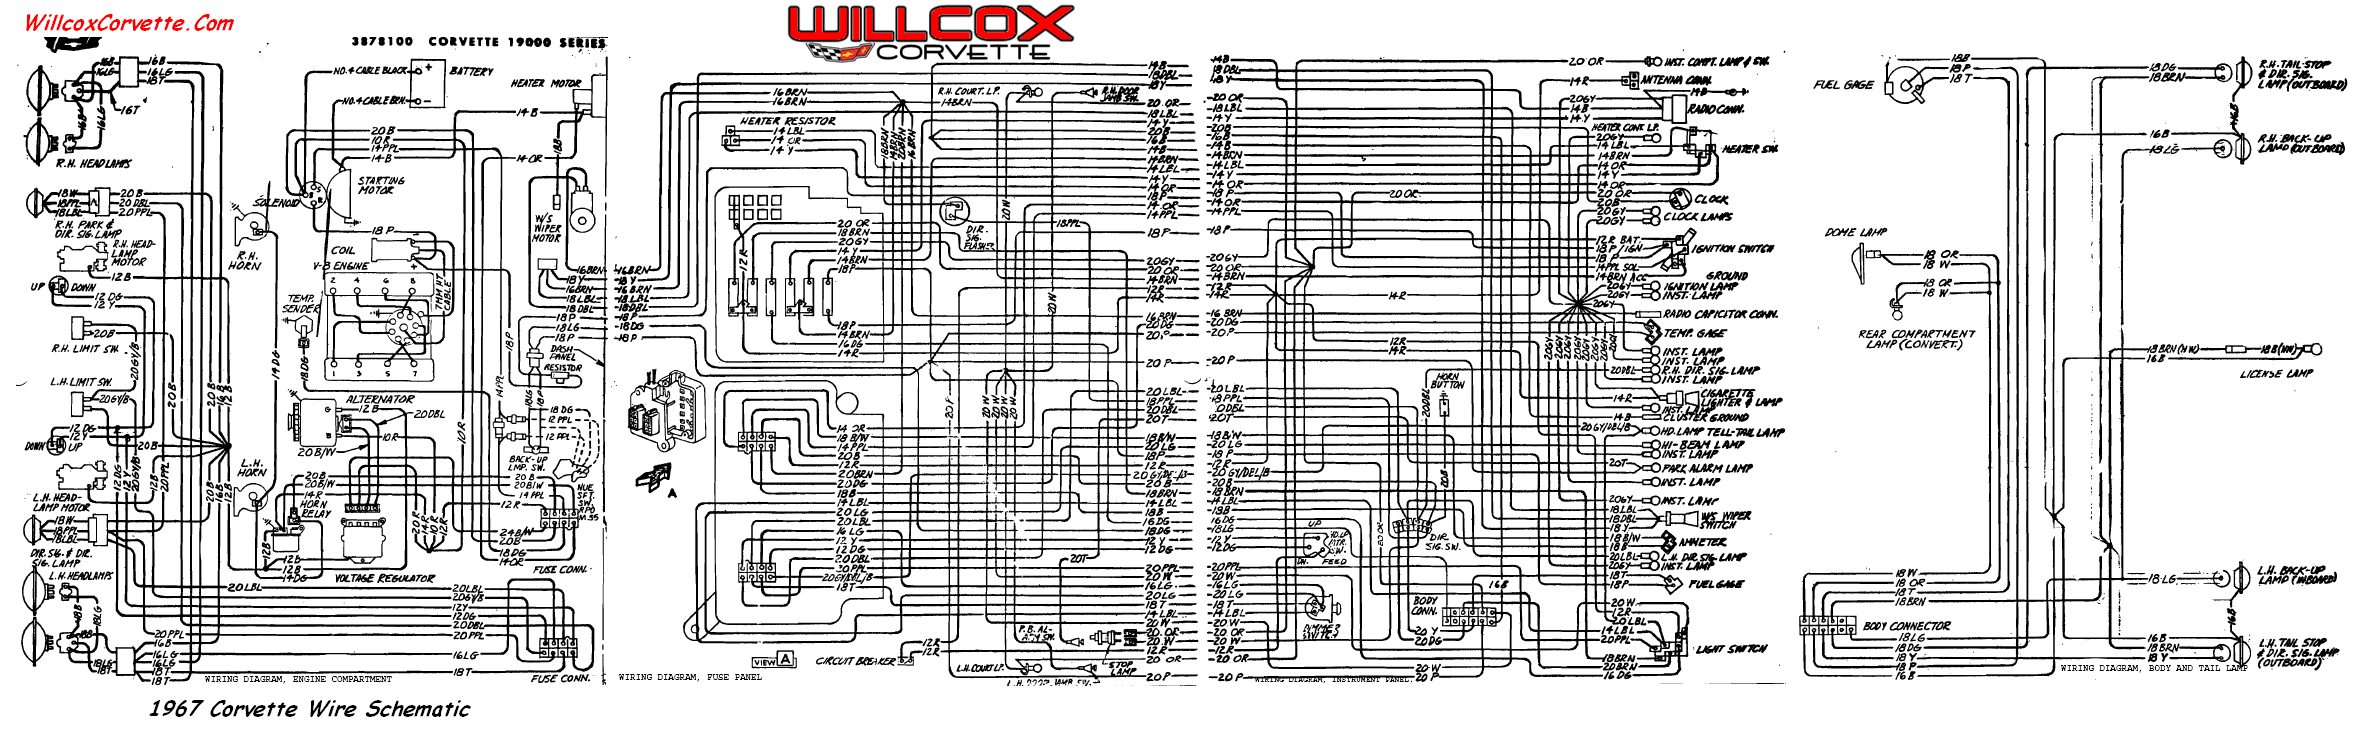 67 wire schematic for tracing wires 1967 corvette wiring diagram (tracer schematic) willcox corvette 1968 corvette wiring diagram at cos-gaming.co